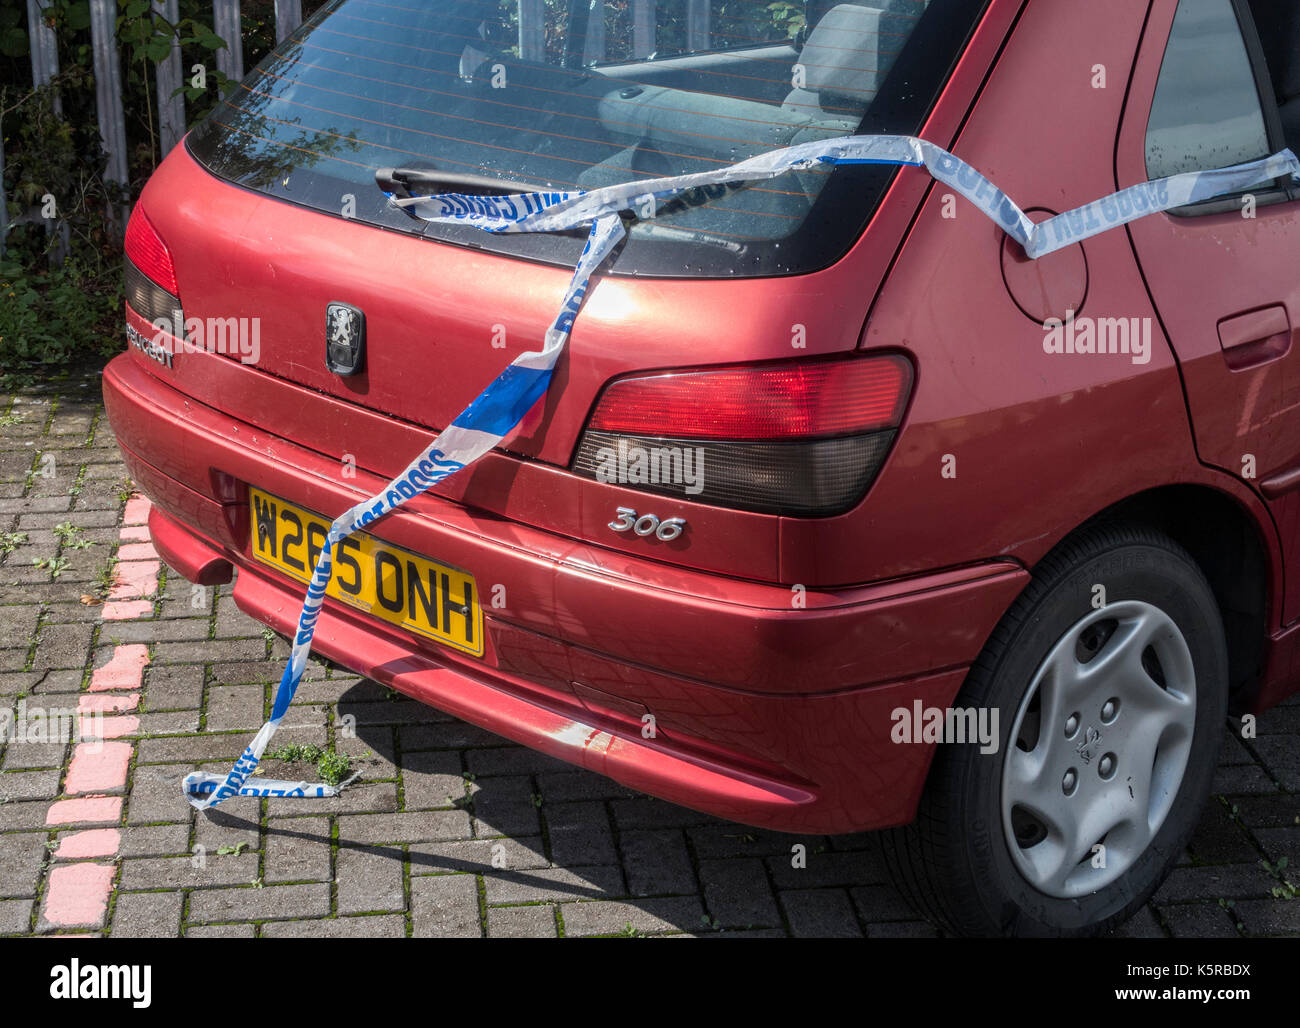 Abandoned and vandalised car - Peugeot 306, tied with 'Police Do Not Cross Tape' at Cullompton services on the M5 - Stock Image